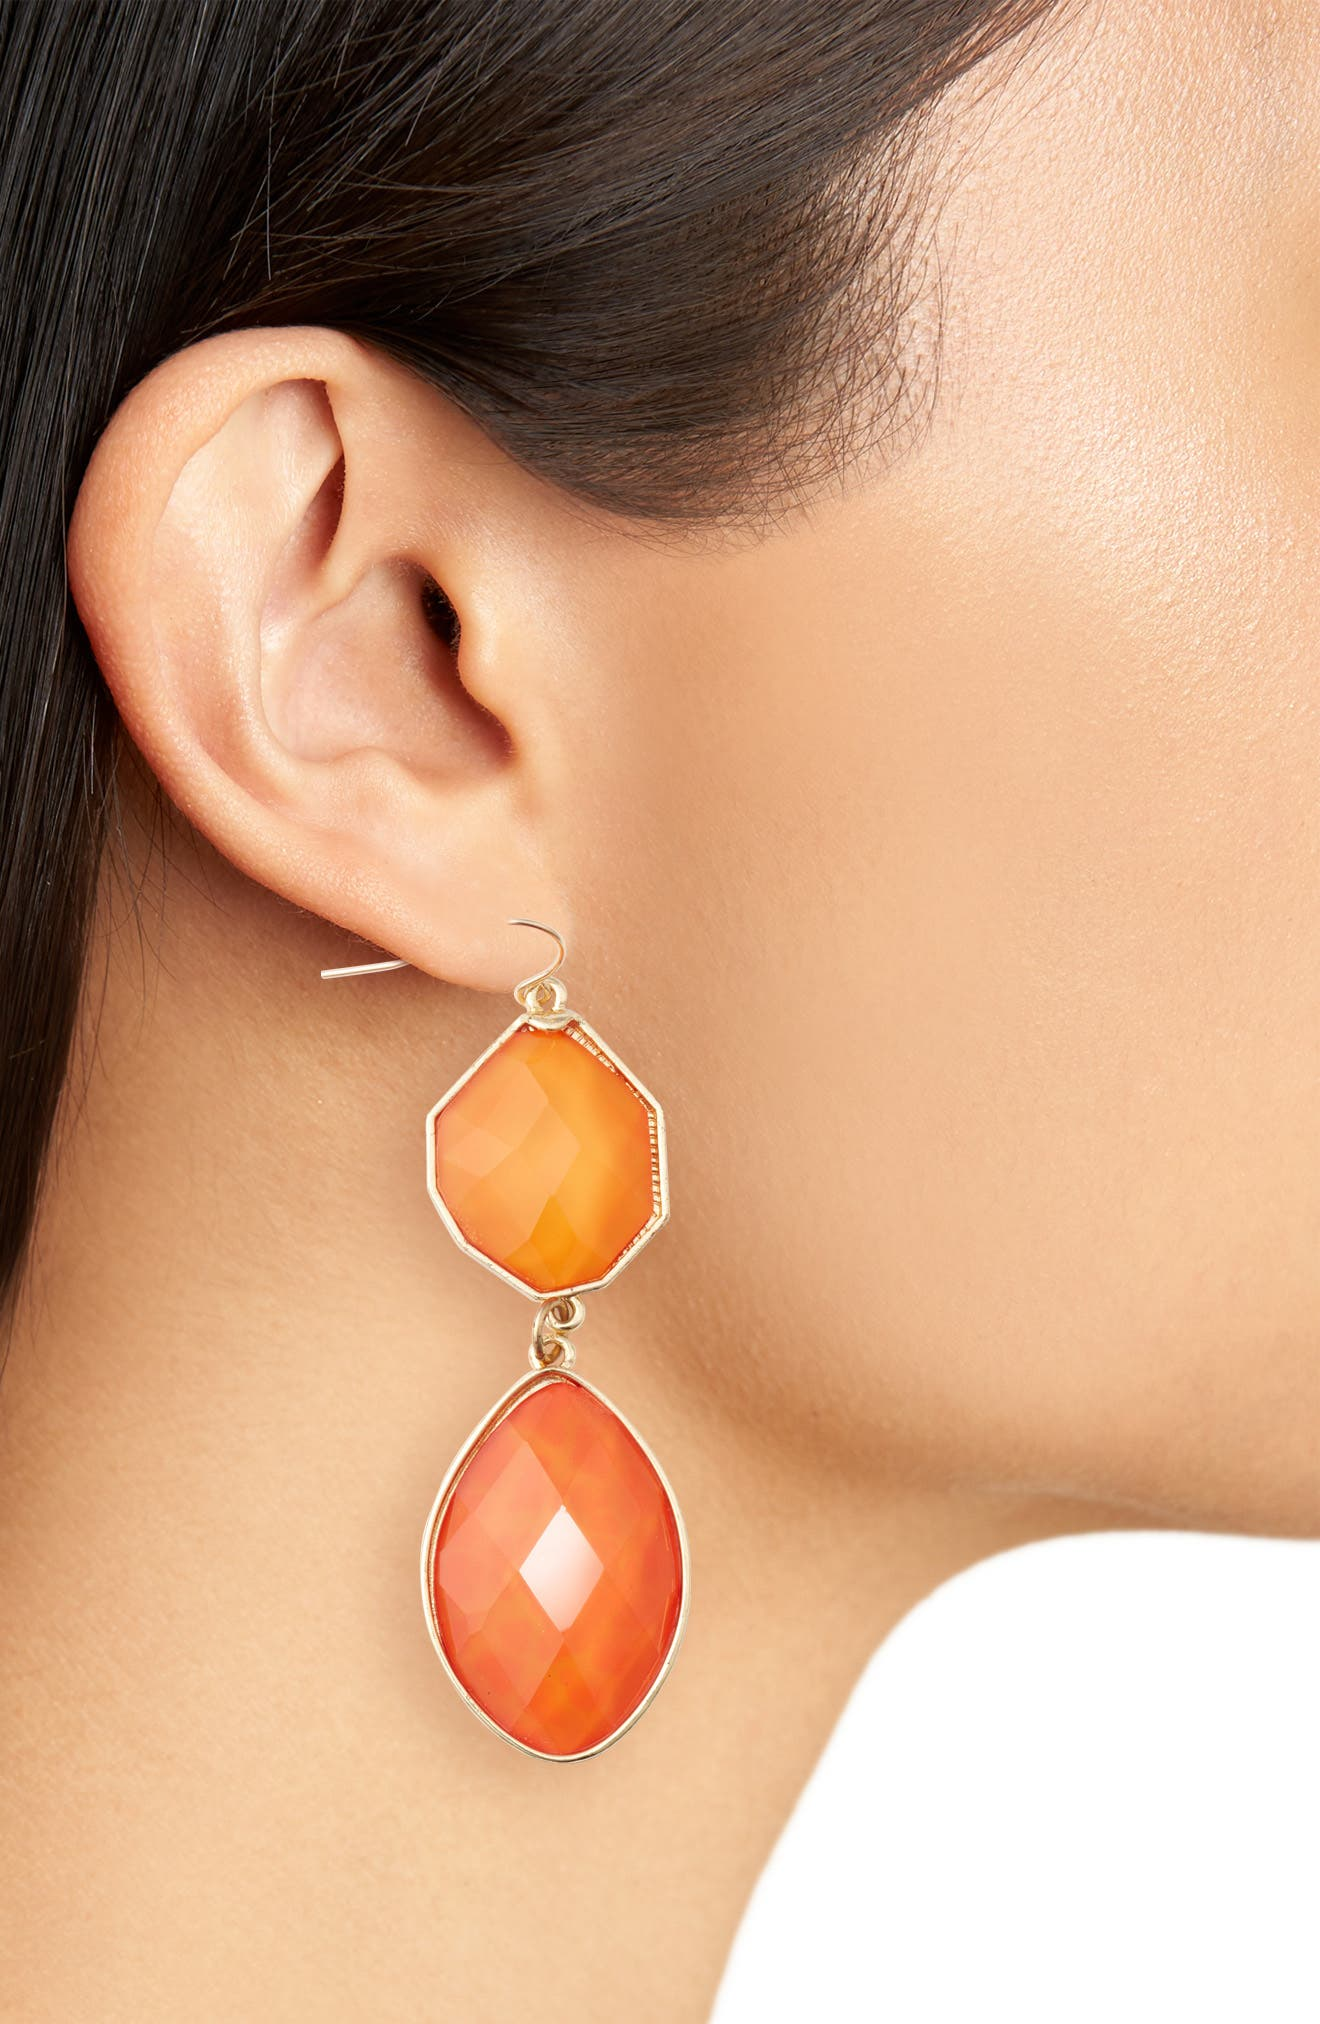 Stone Drop Earrings,                             Alternate thumbnail 2, color,                             ORANGE/ PEACH